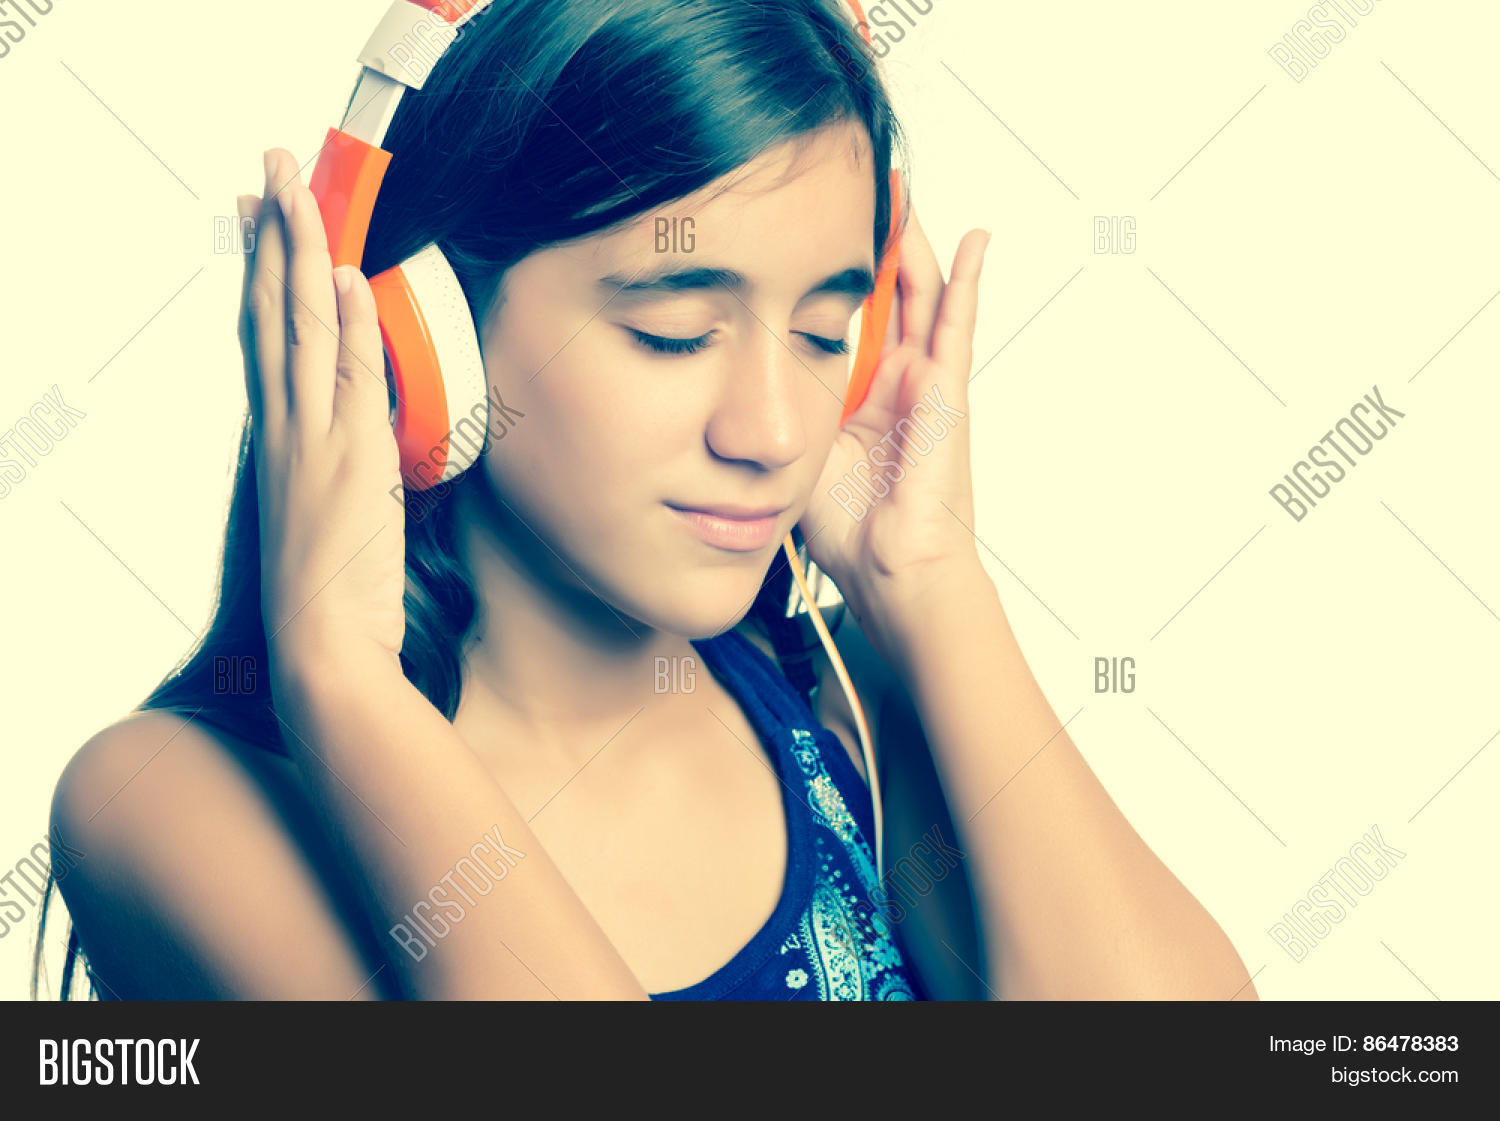 instagram toned small teenage girl listening to music on